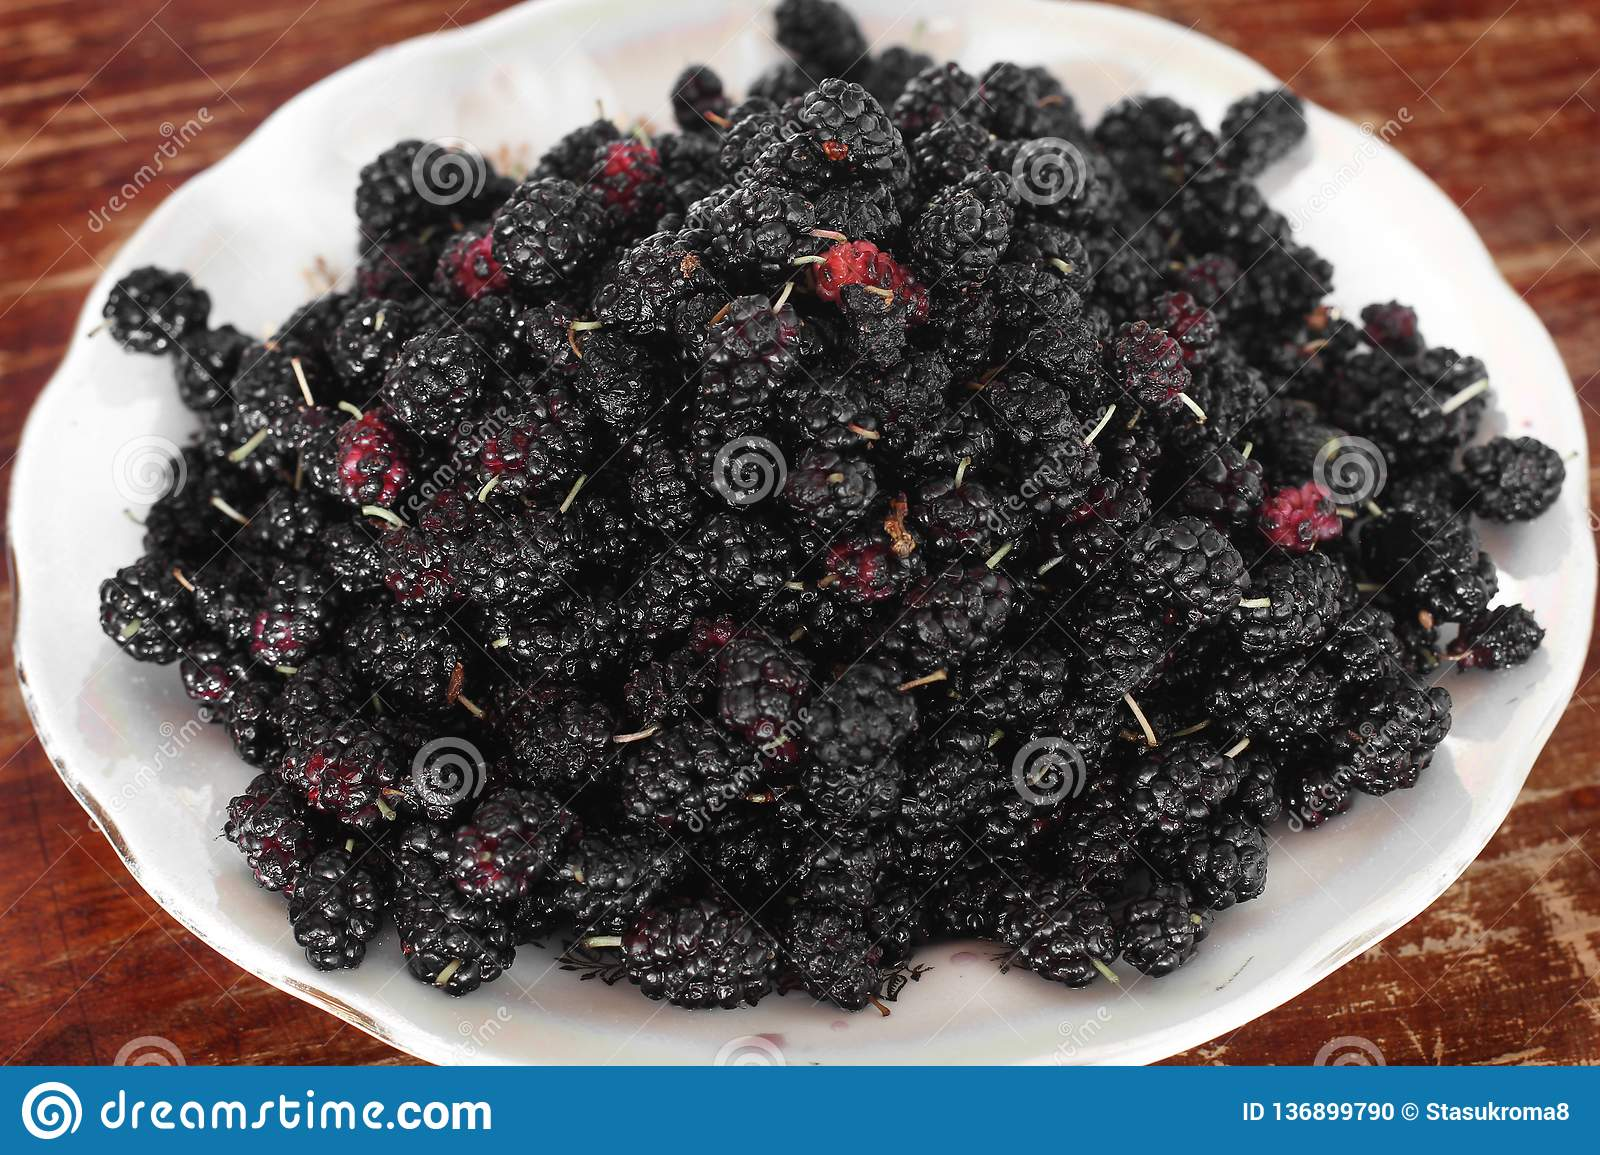 Morus. Mulberry on a plate